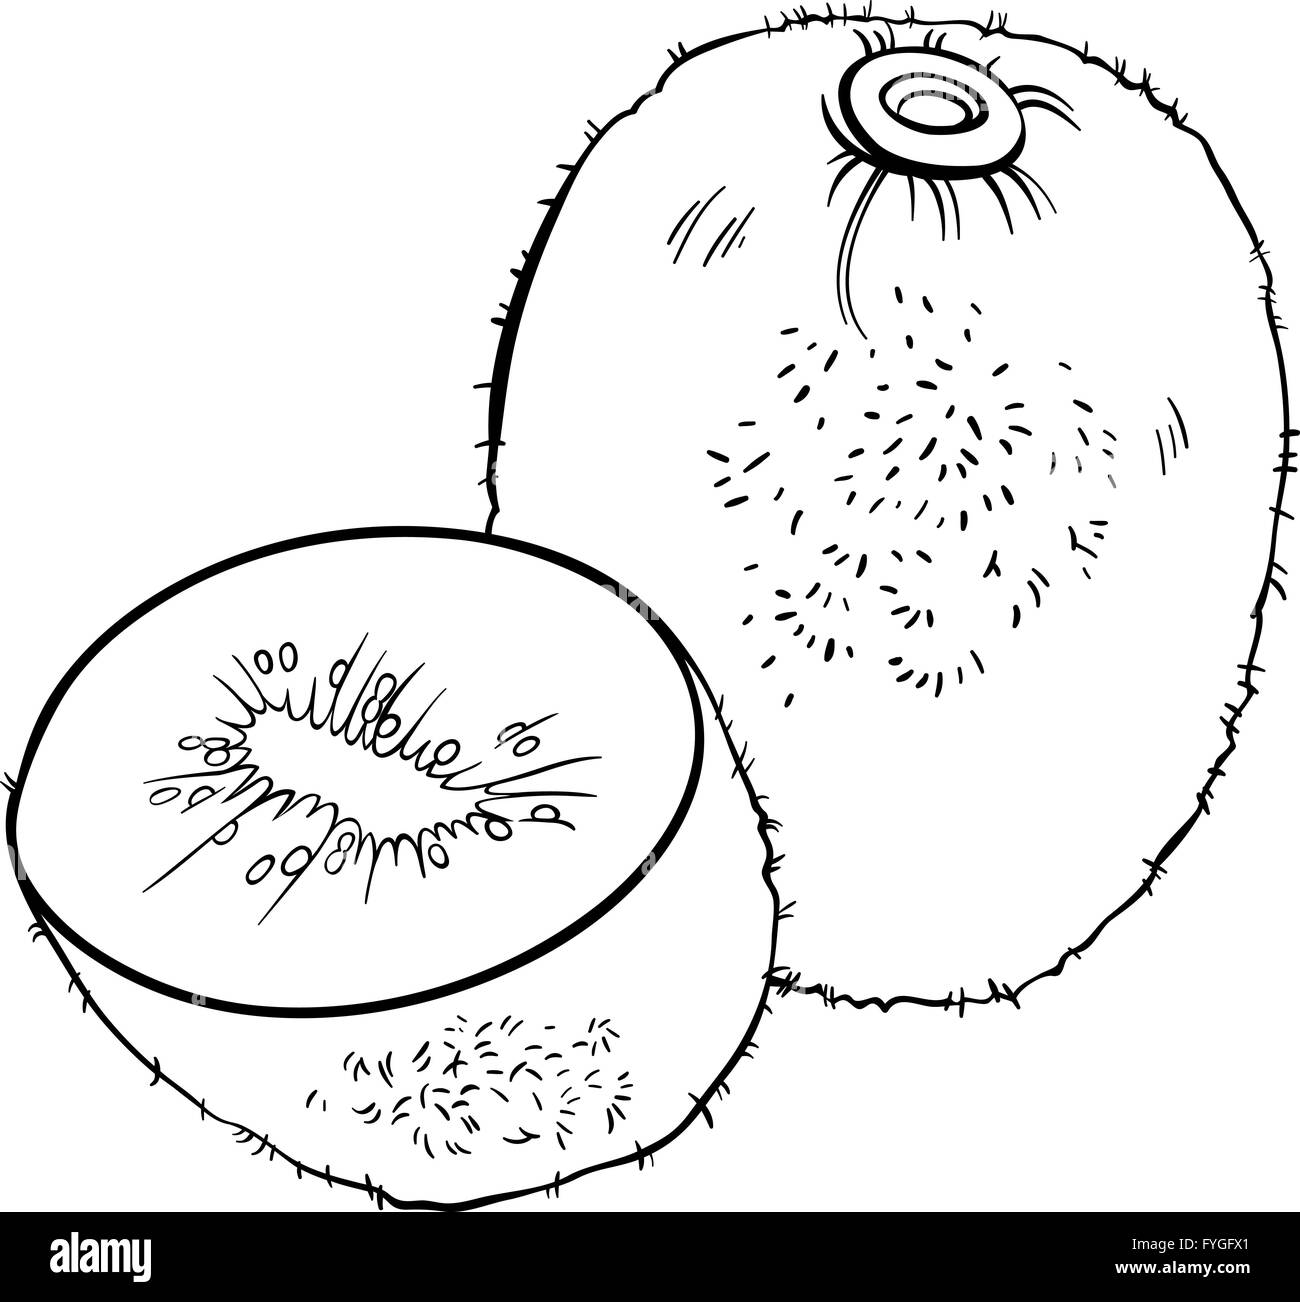 Kiwi Frucht Illustration für Malbuch Stockfoto, Bild: 103011273 - Alamy